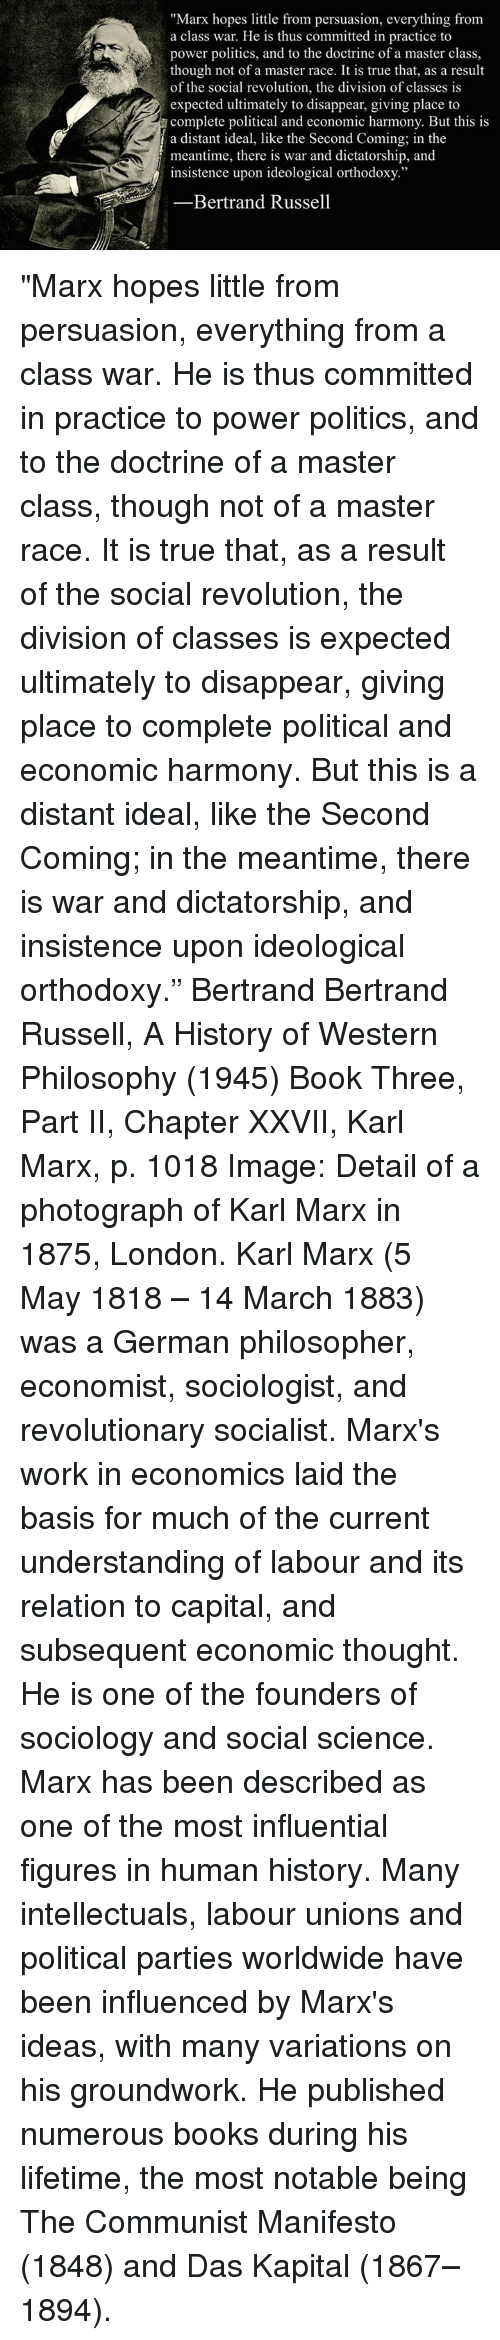 describing the social scientist historian and revolutionist karl marx Thomas bailey group a karl marx (1818-83) karl marx is a german political philosopher, revolutionist, and historian who is famous for of both describing and.